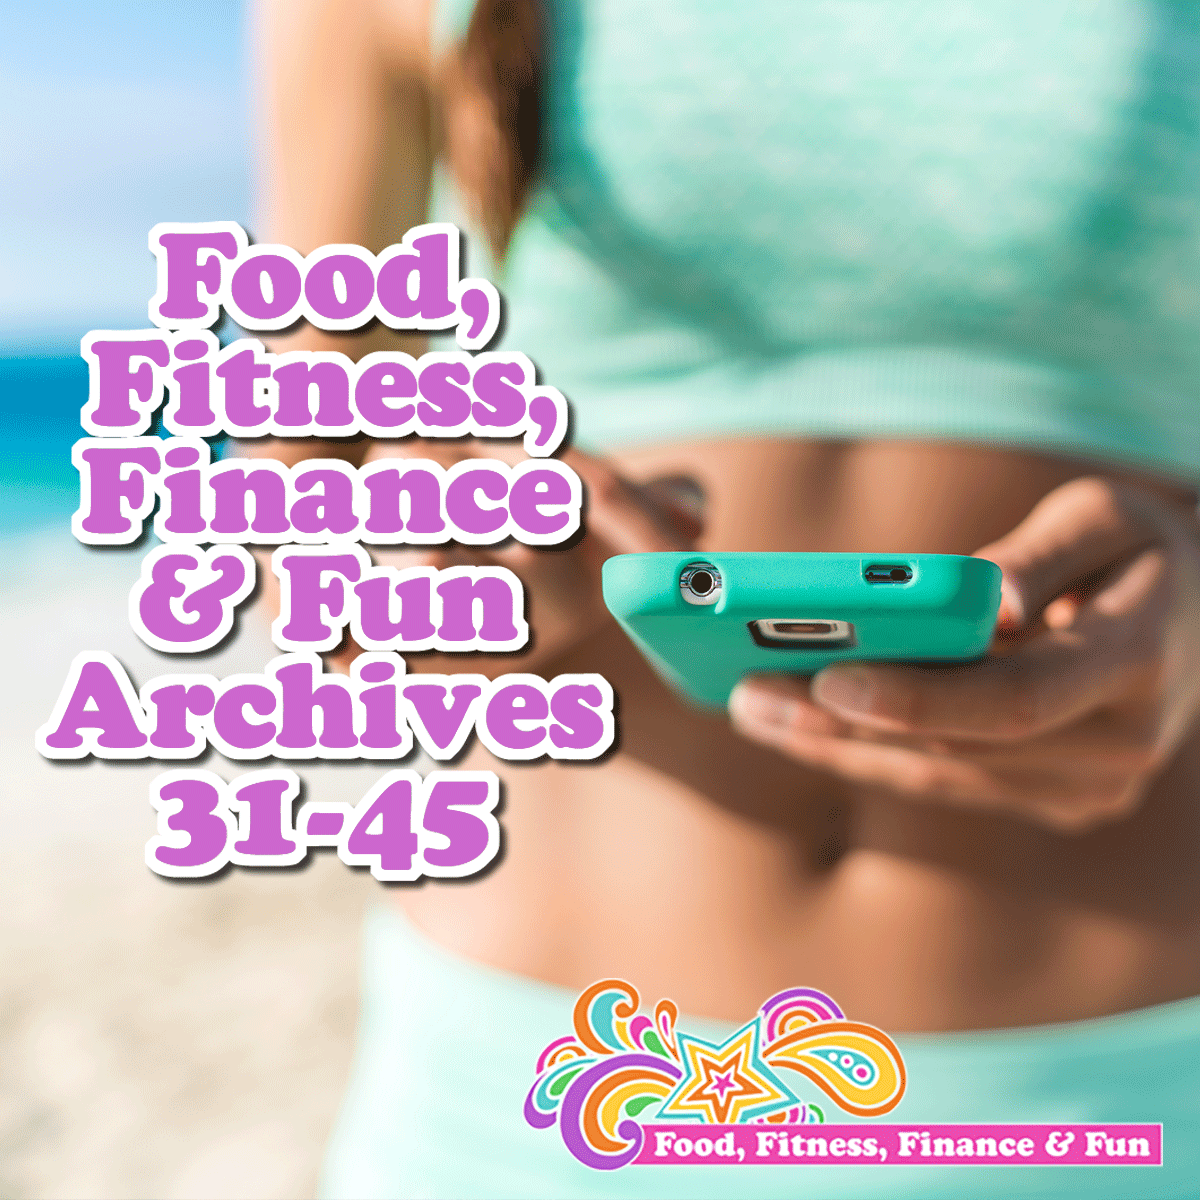 Food, Fitness, Finance and Fun Archives 31-45